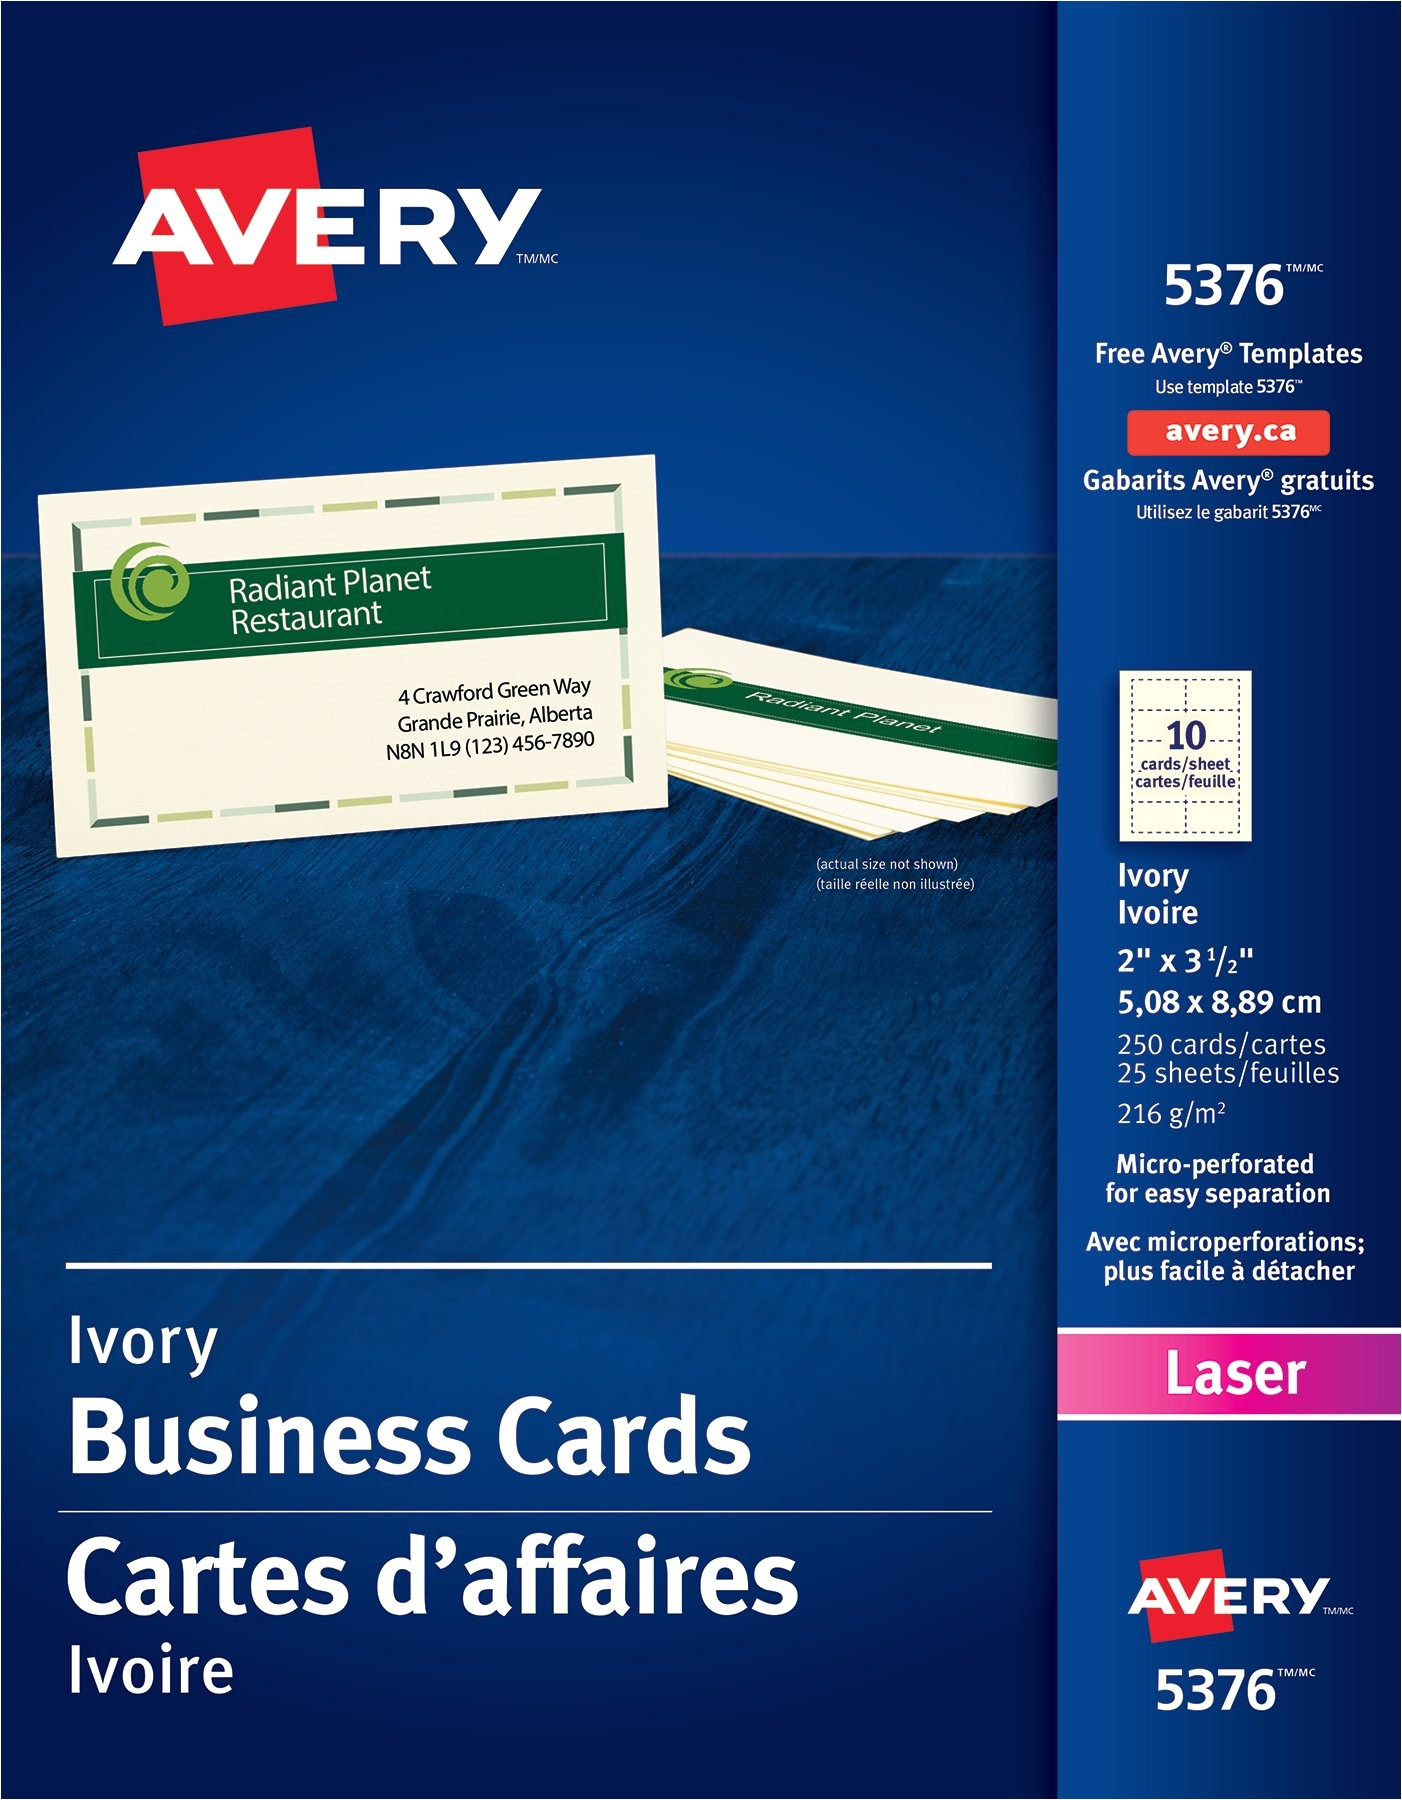 Avery Business Cards Template L7414 Fresh Pics Of Avery Free Business Card Templates